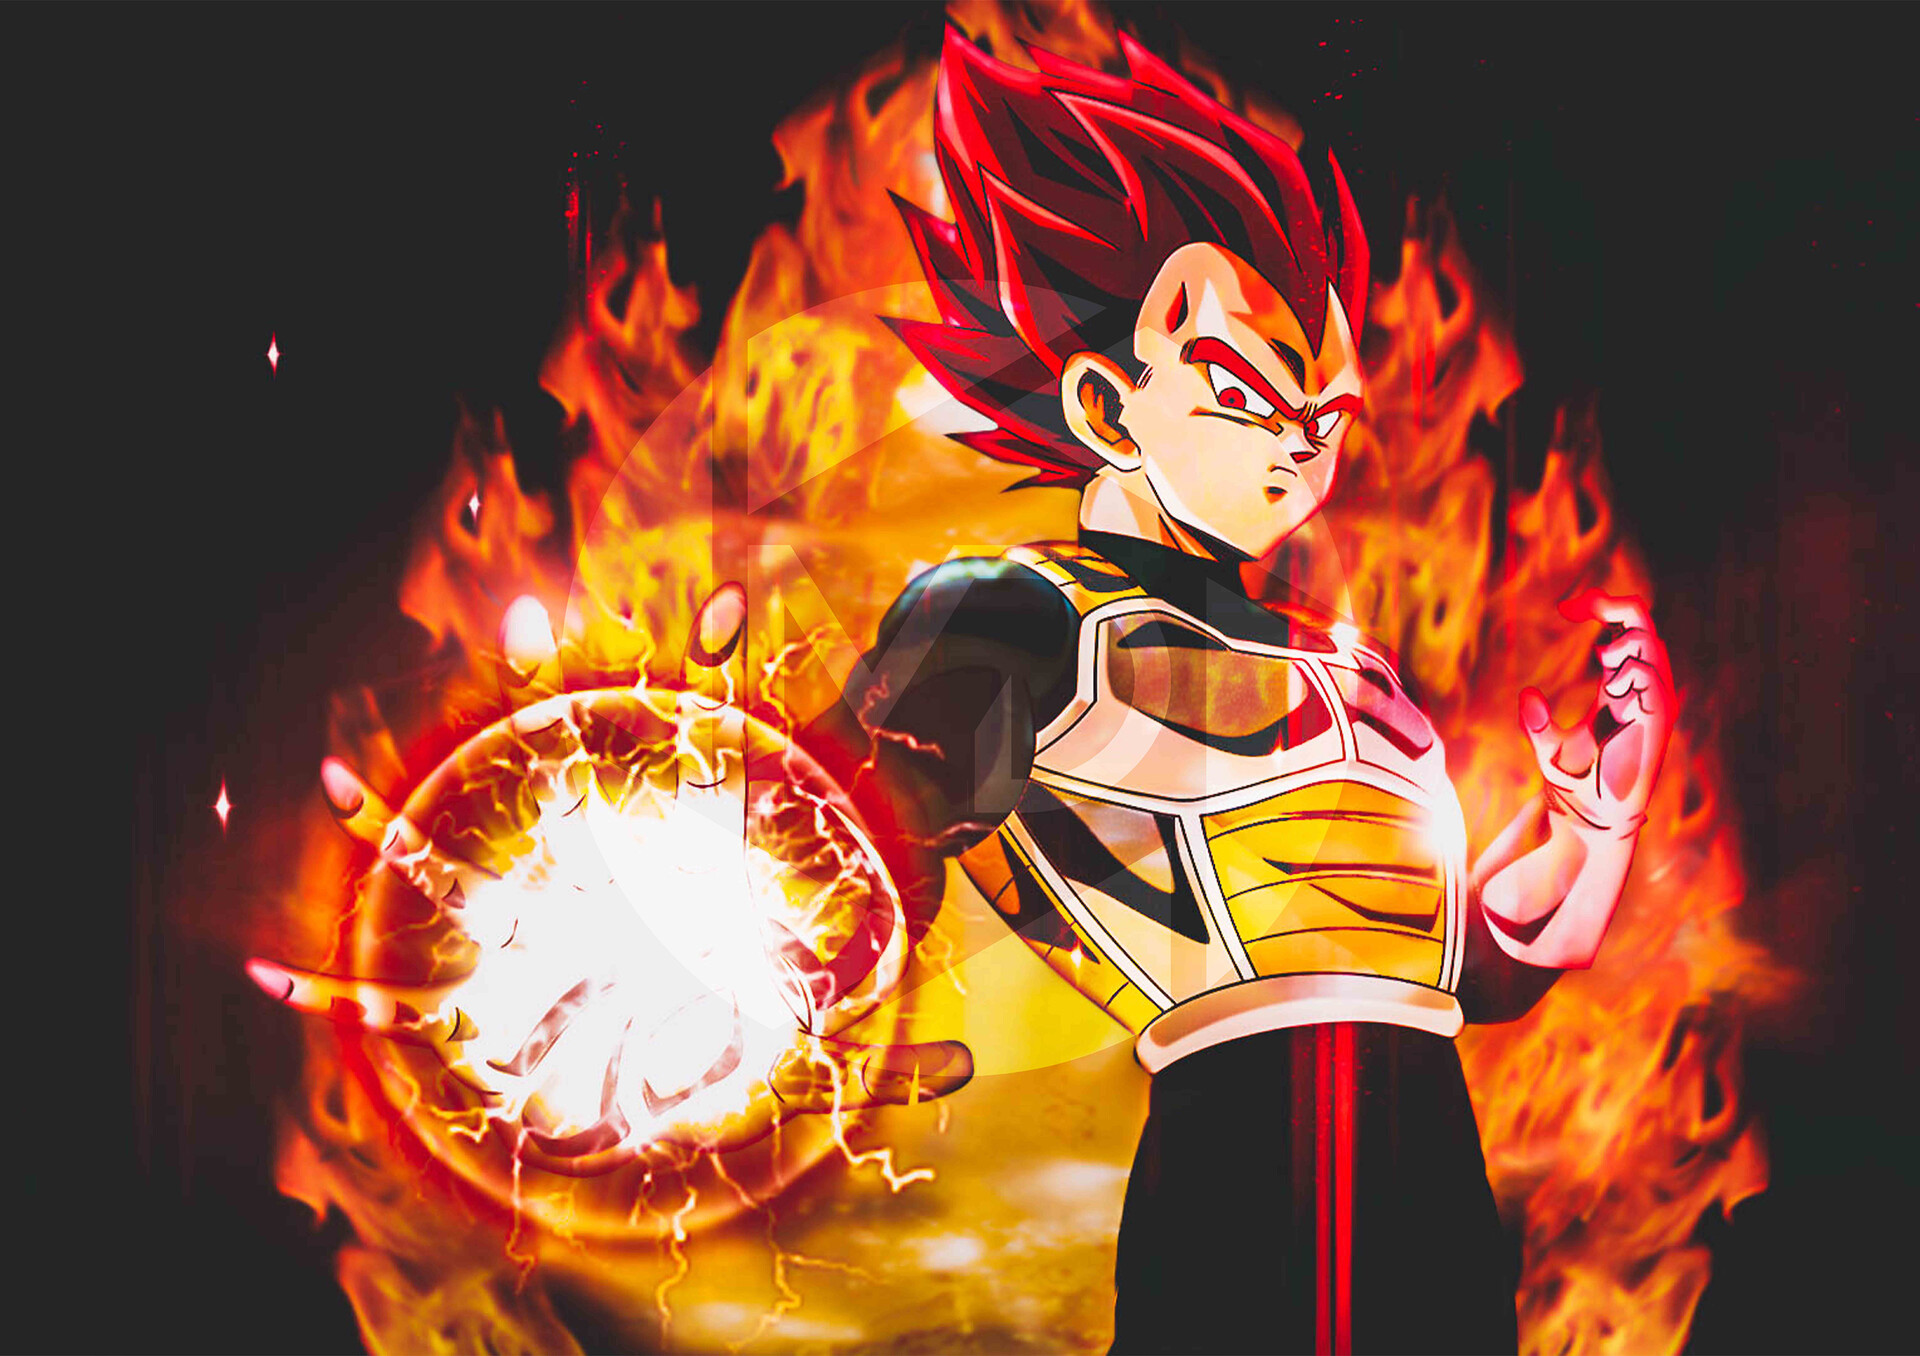 mdesign-digital-artwork-vegeta-super-saiyan-god.jpg?1563652085